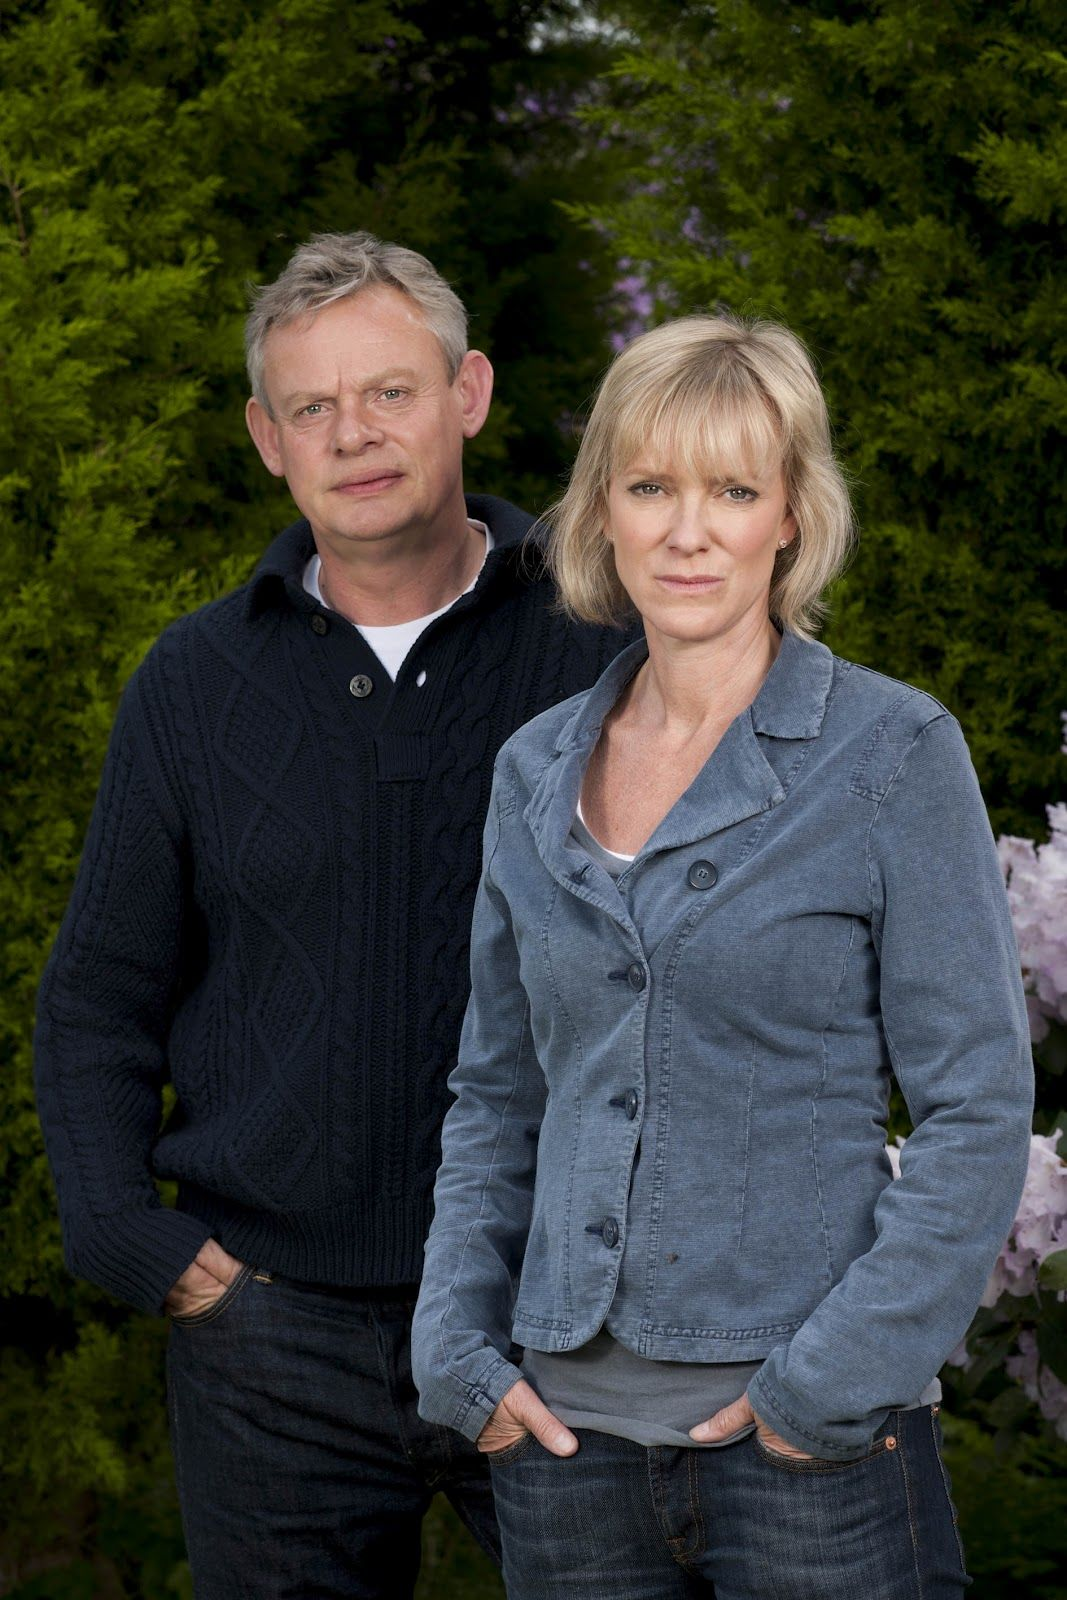 martin clunes and hermione harris in a mothers son 2012